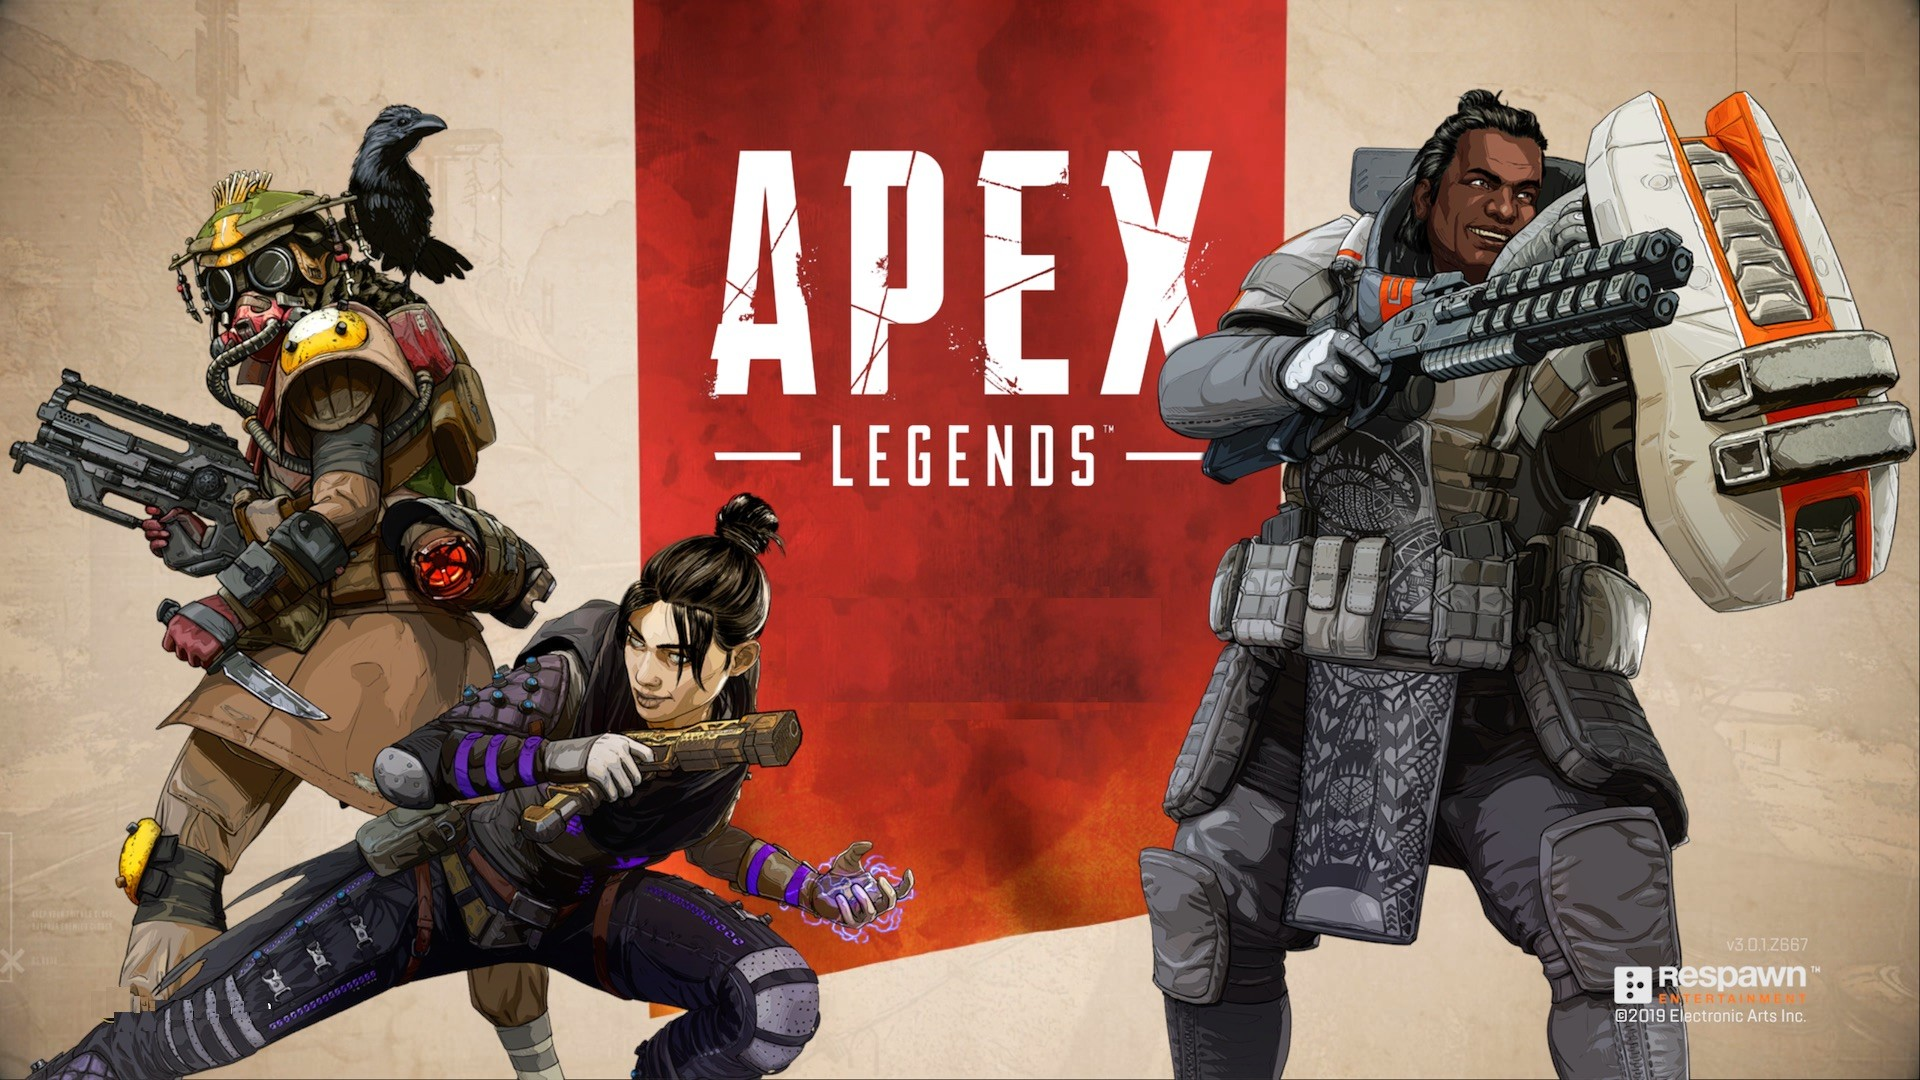 How to download Apex Legends on PC